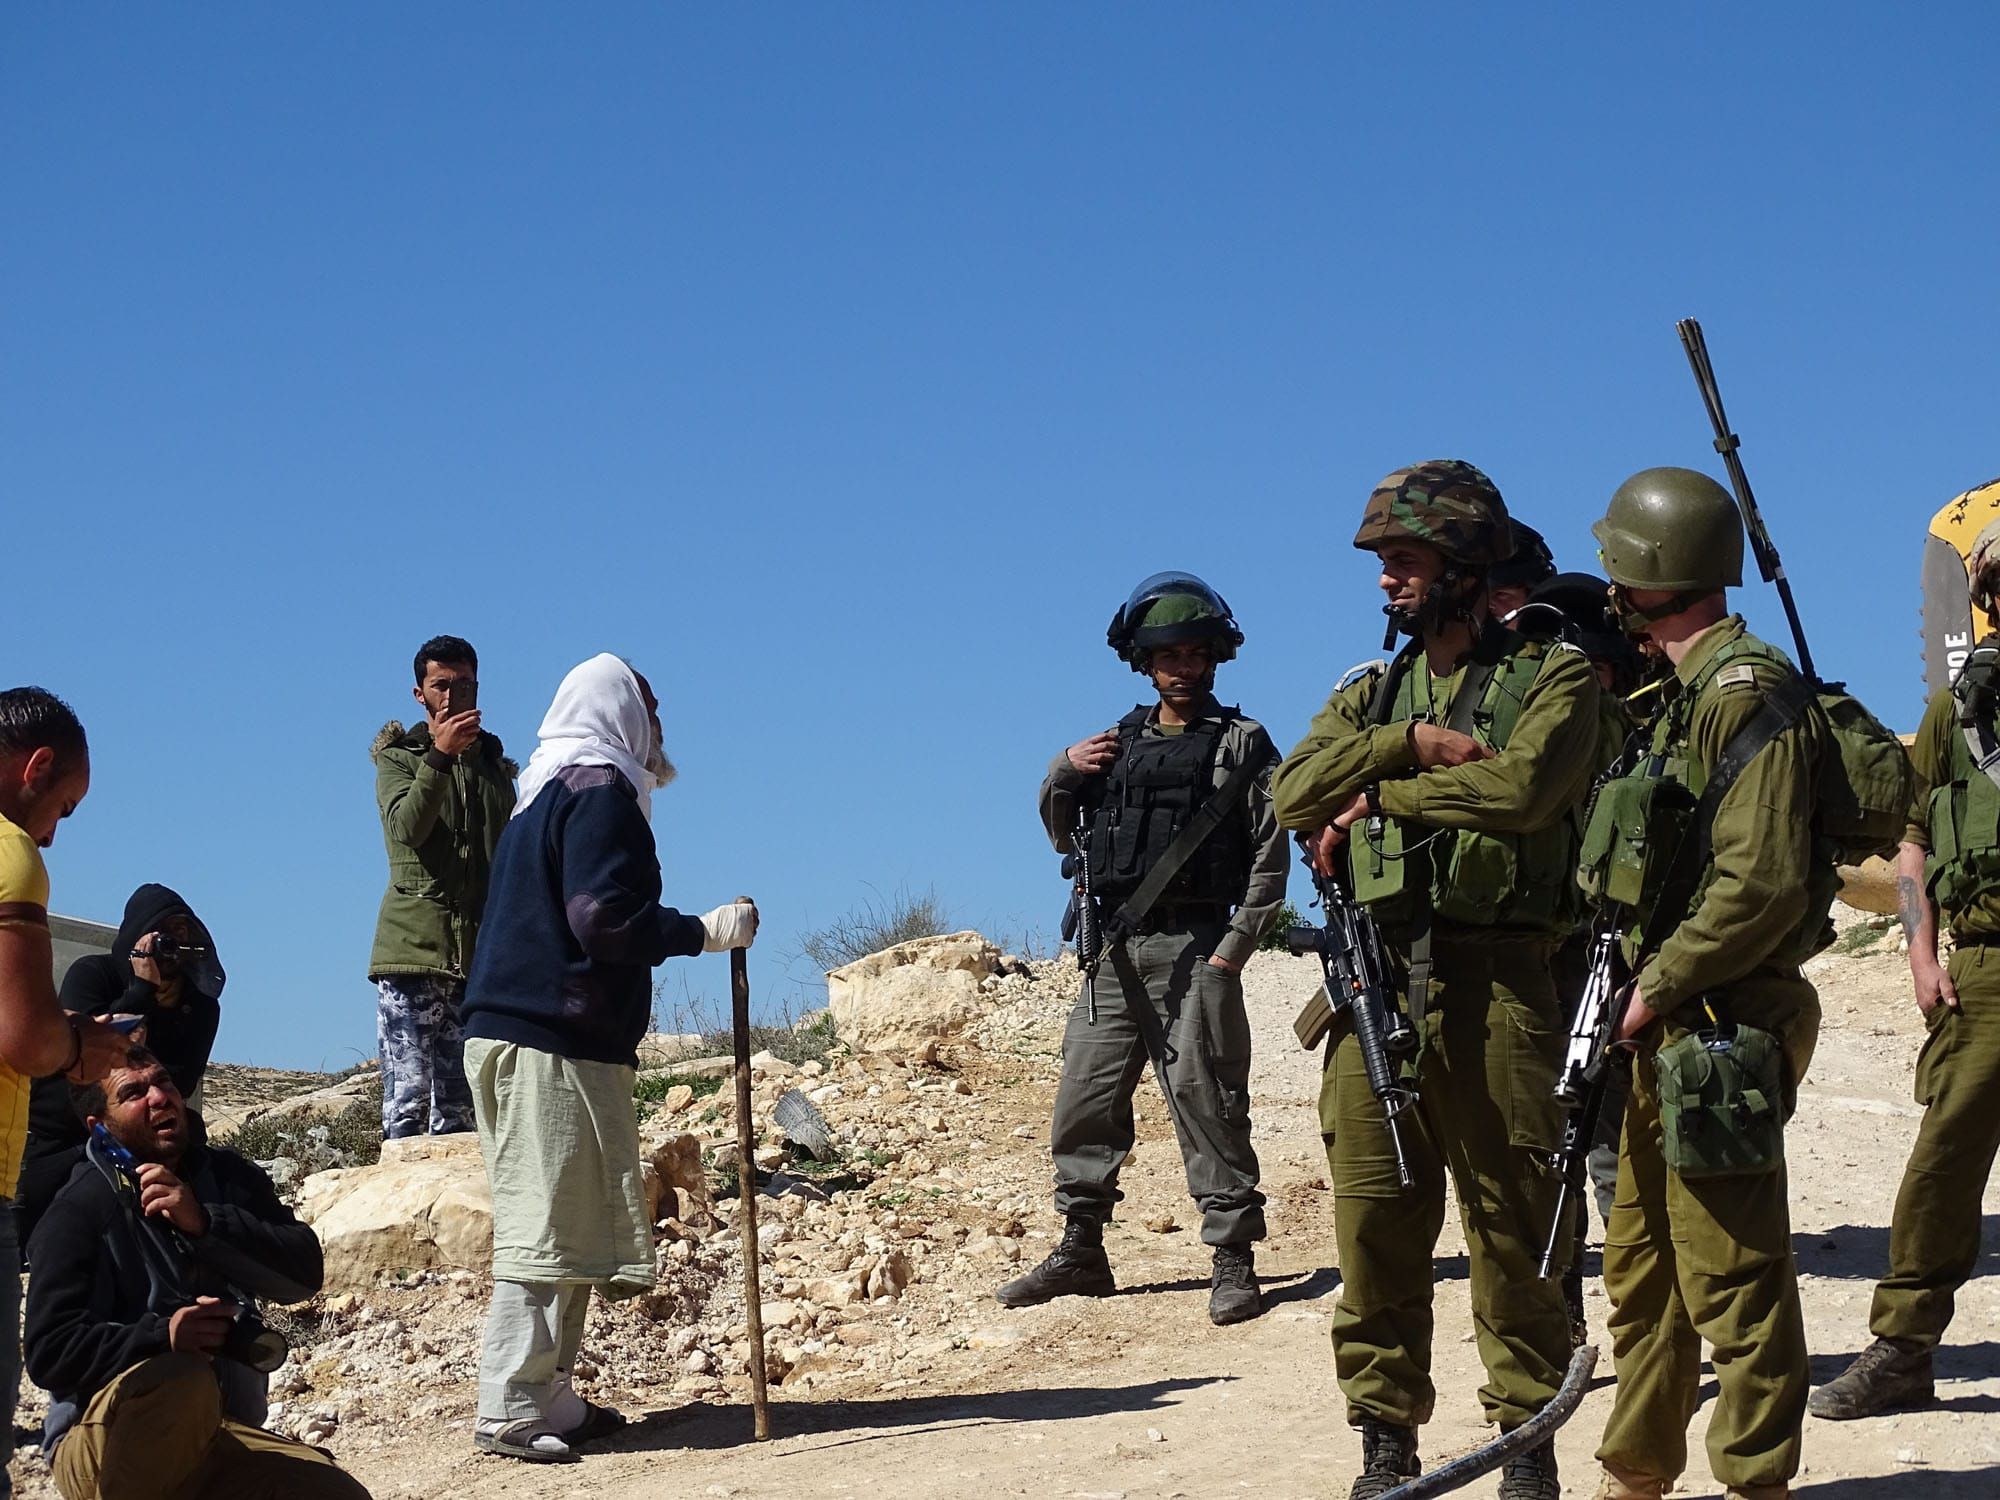 A Palestinian shepherd complains to Israeli soldiers as community water pipes are destroyed